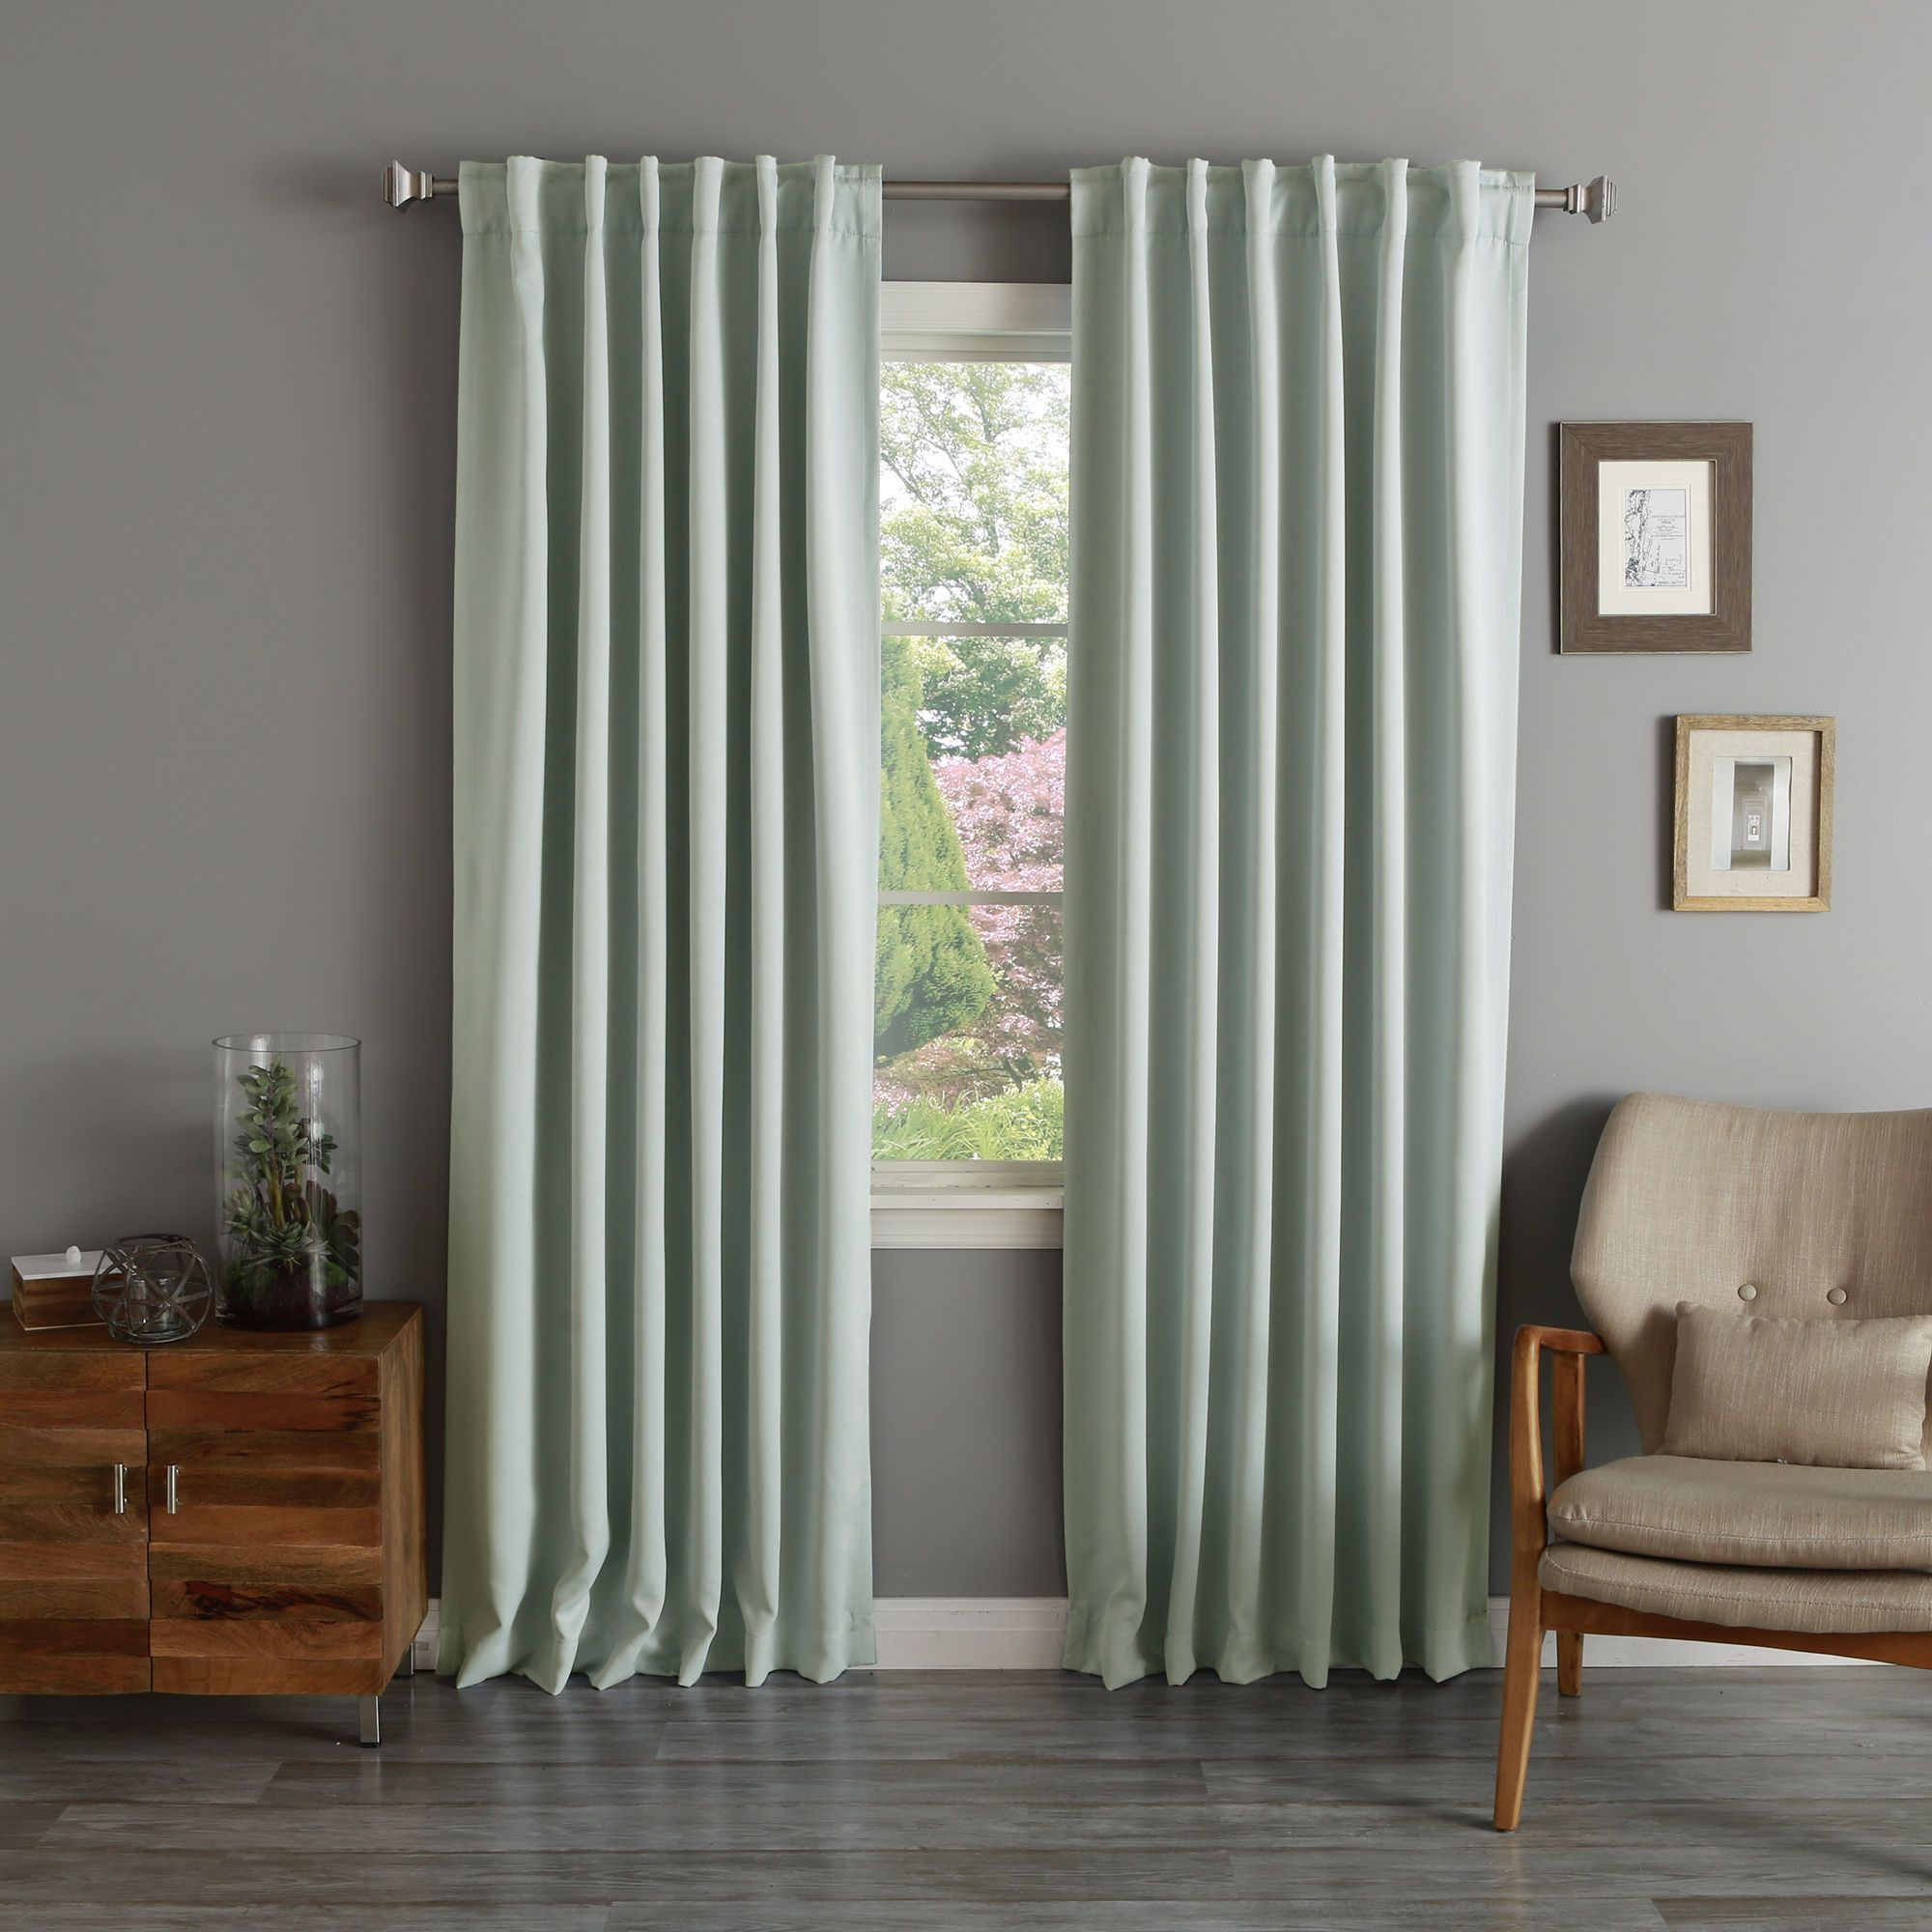 thermal curtains home blackout insulated inch panel itm curtain aurora solid pair